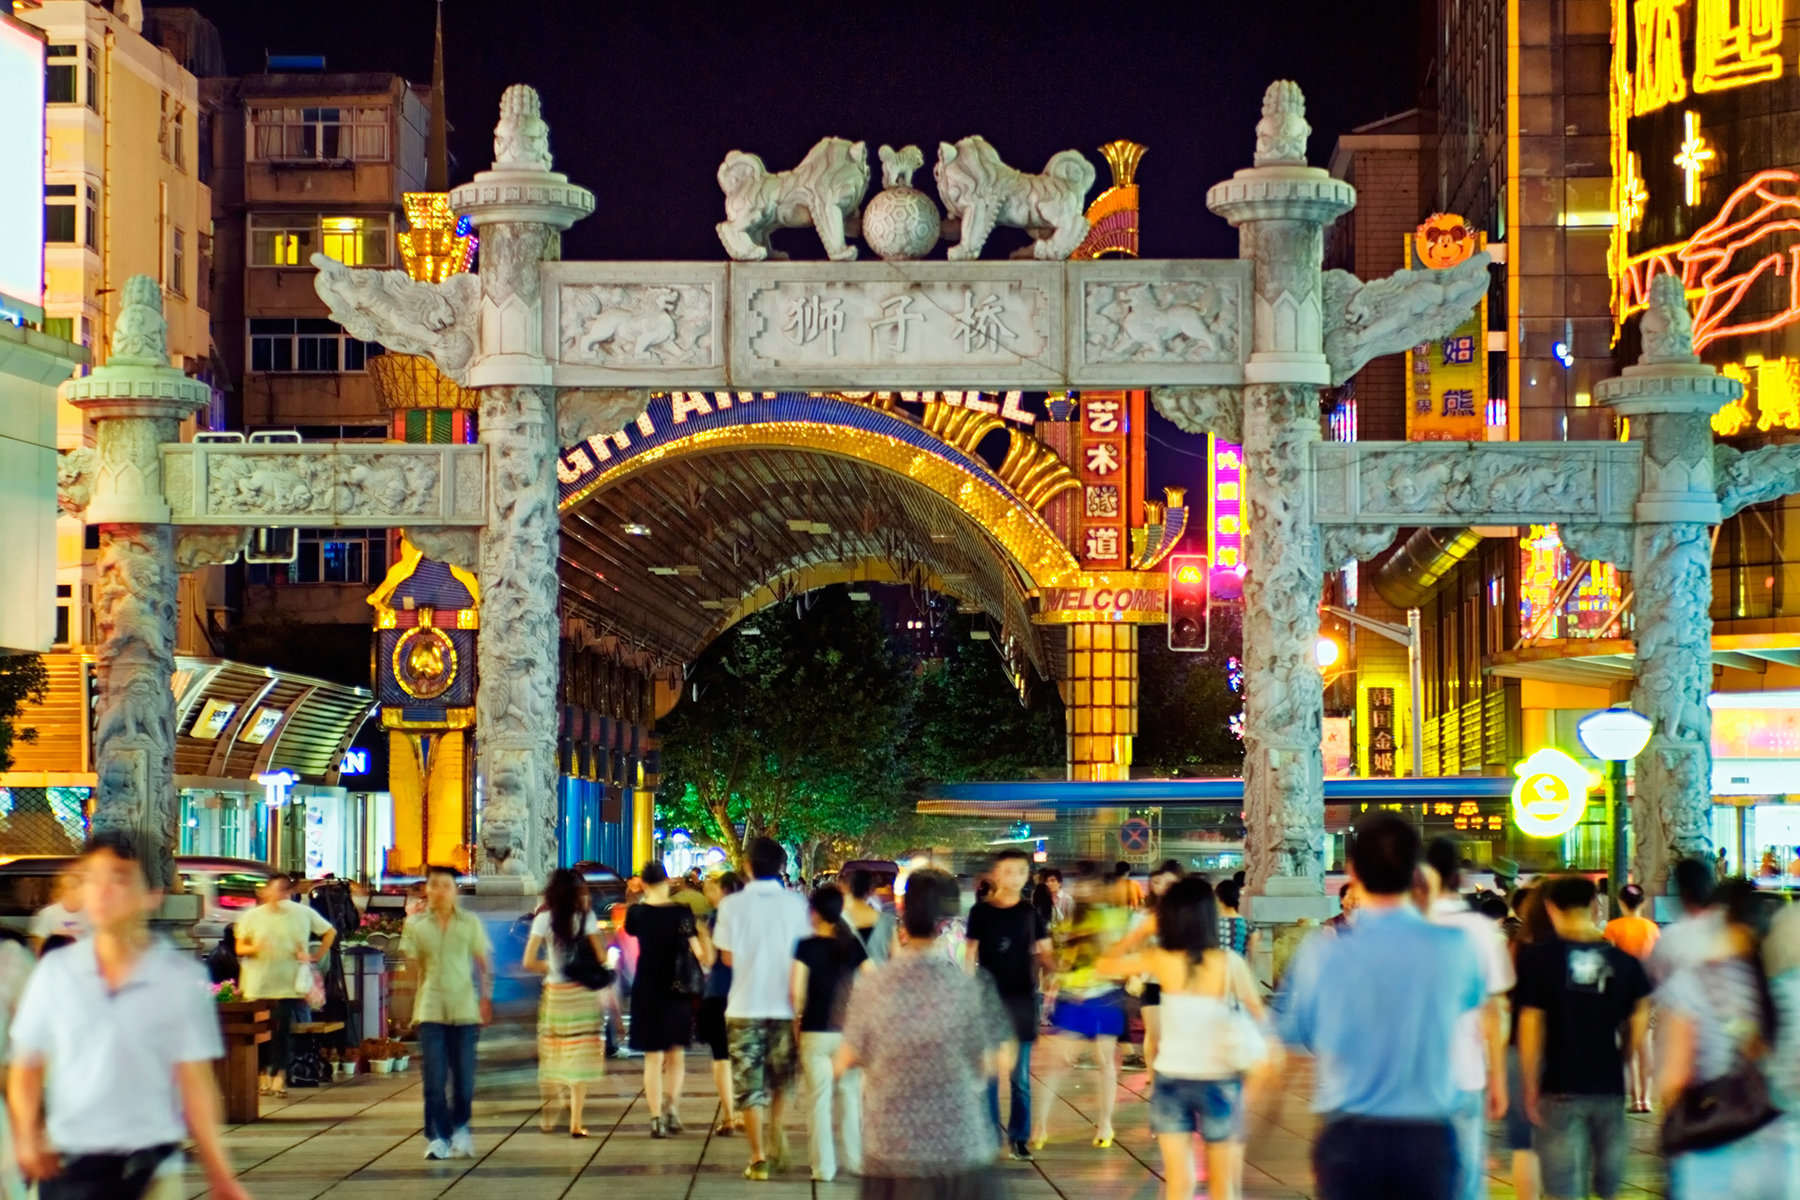 China, Nanjing, Hunan Road, Old stone gateway to pedestrian area at night